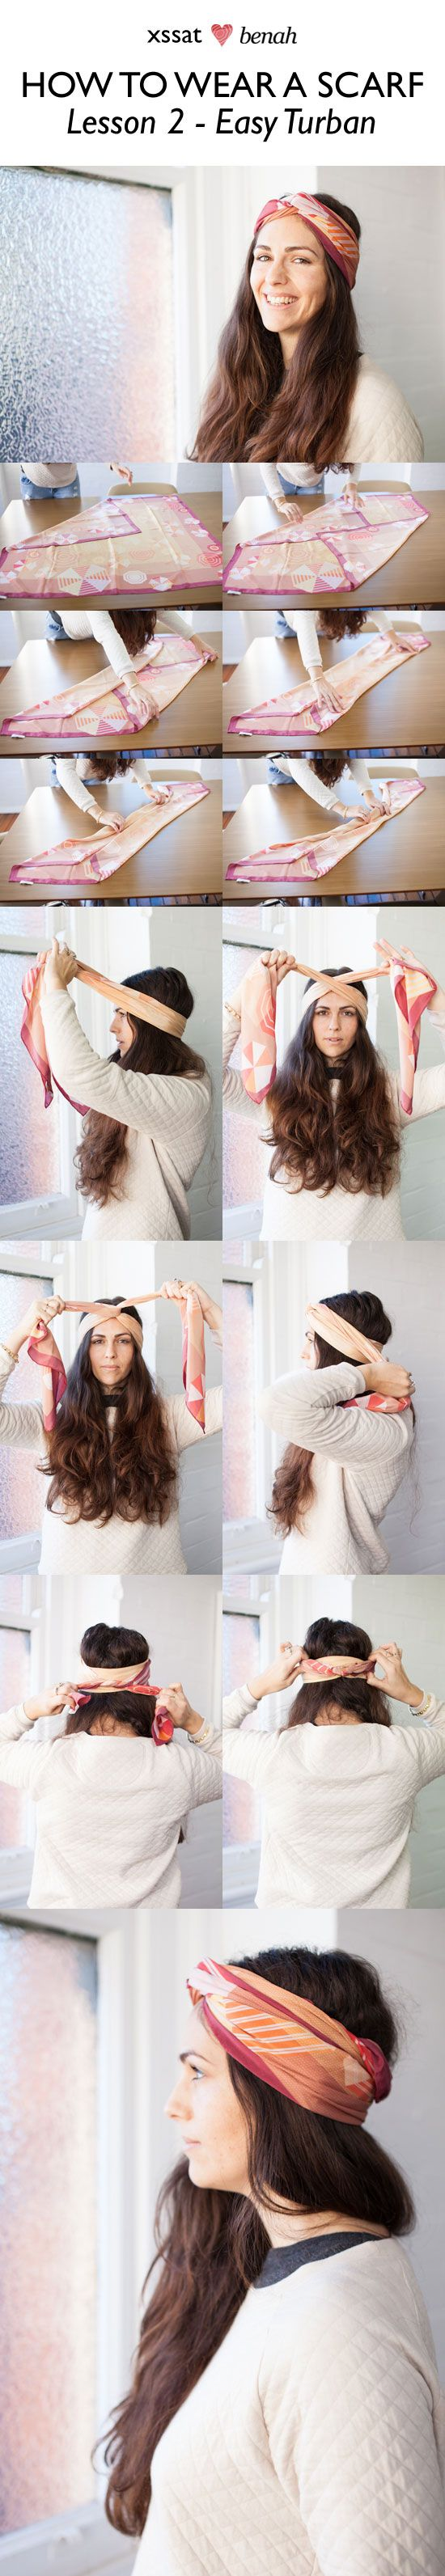 How to wear a scarf! Great tutorial on how to turn a scarf into a turban. Visit Walgreens.com for great hair products and accessories.